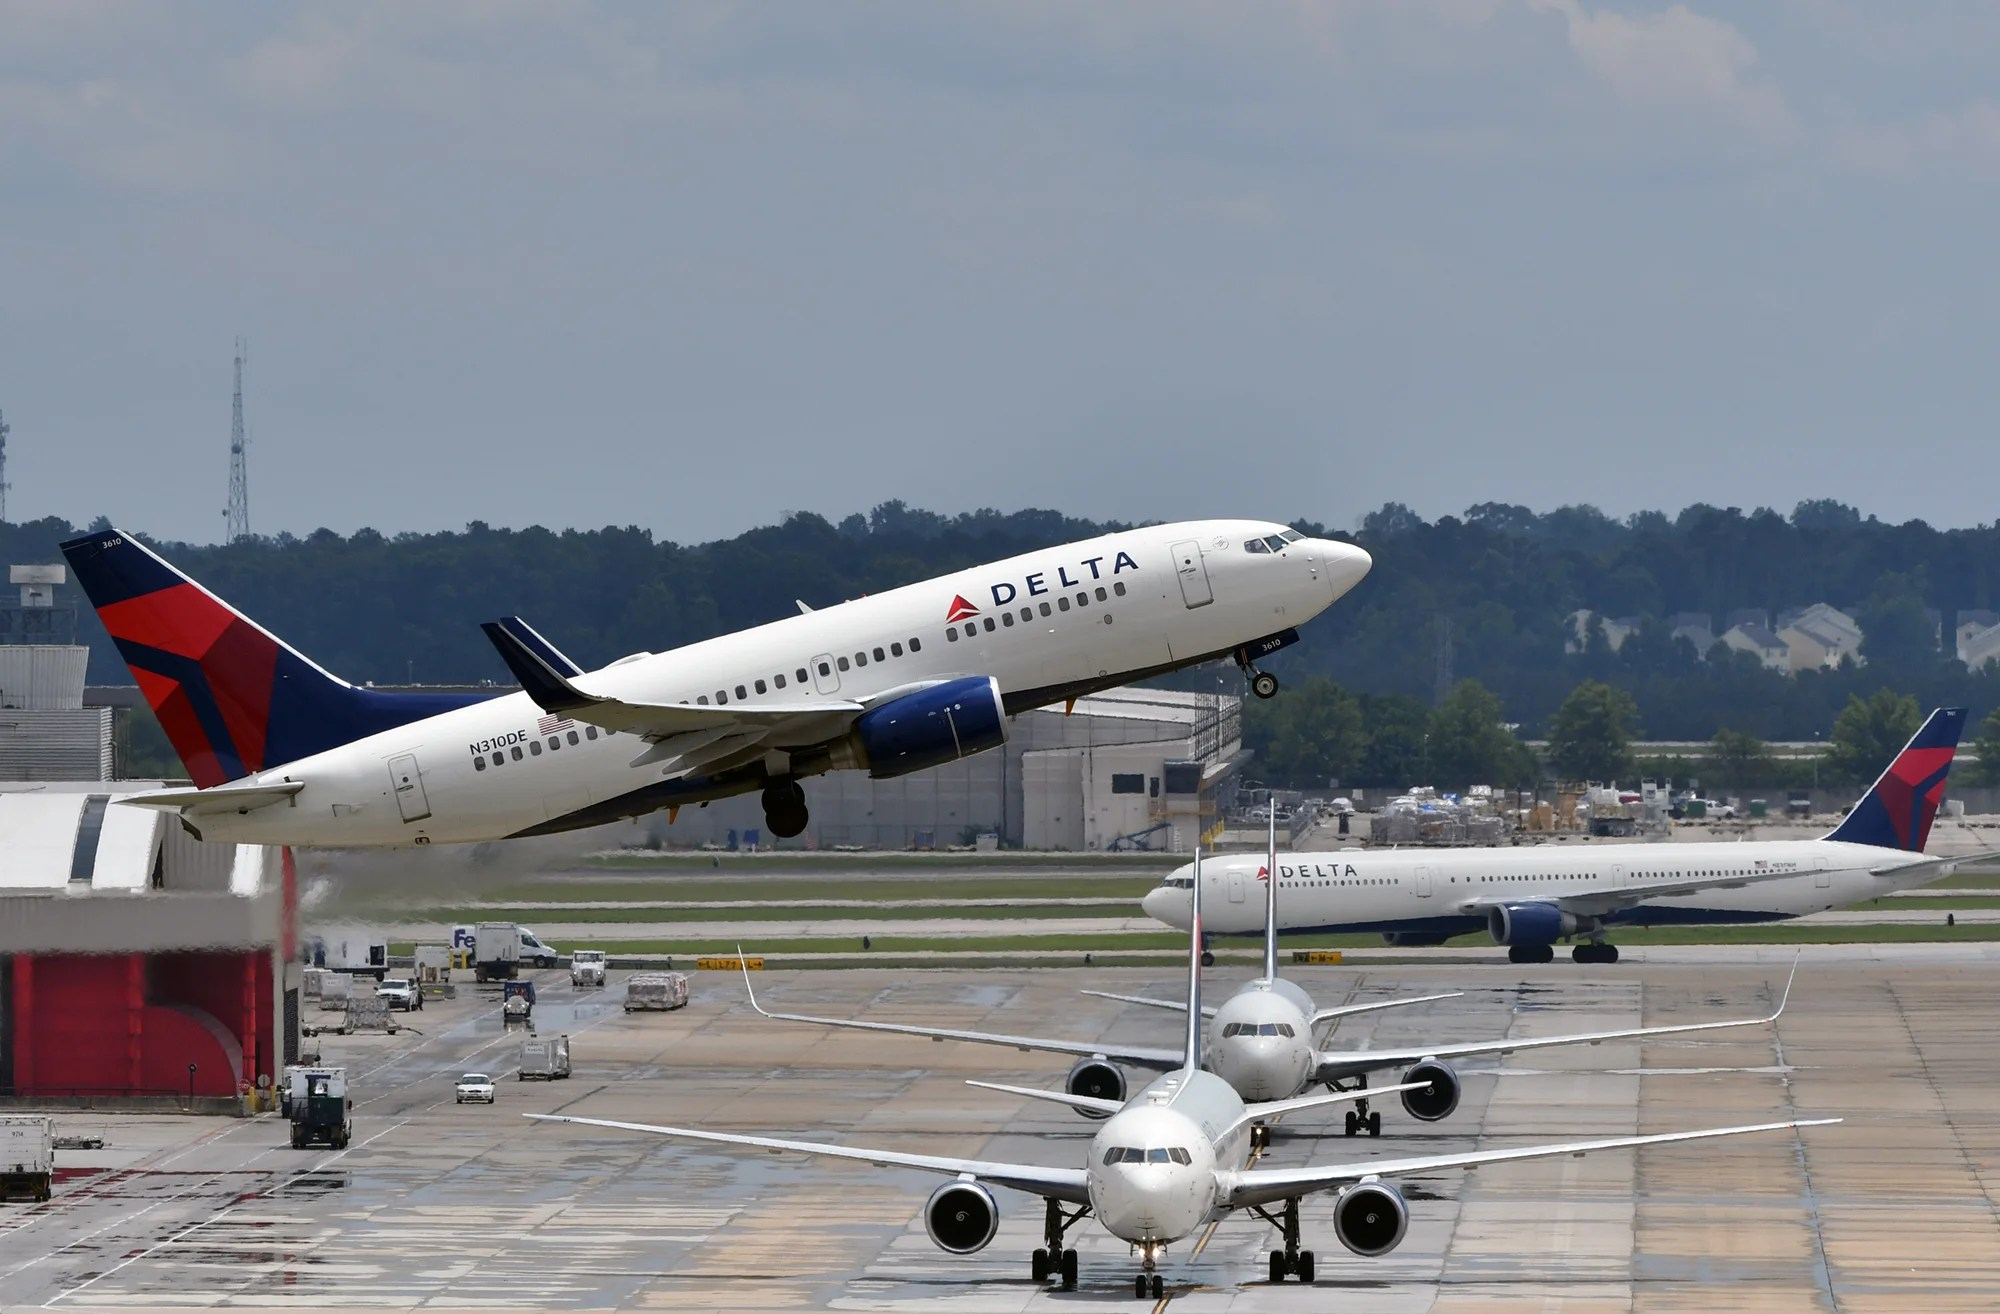 The government says a man scammed Delta out of 42 million SkyBonus points